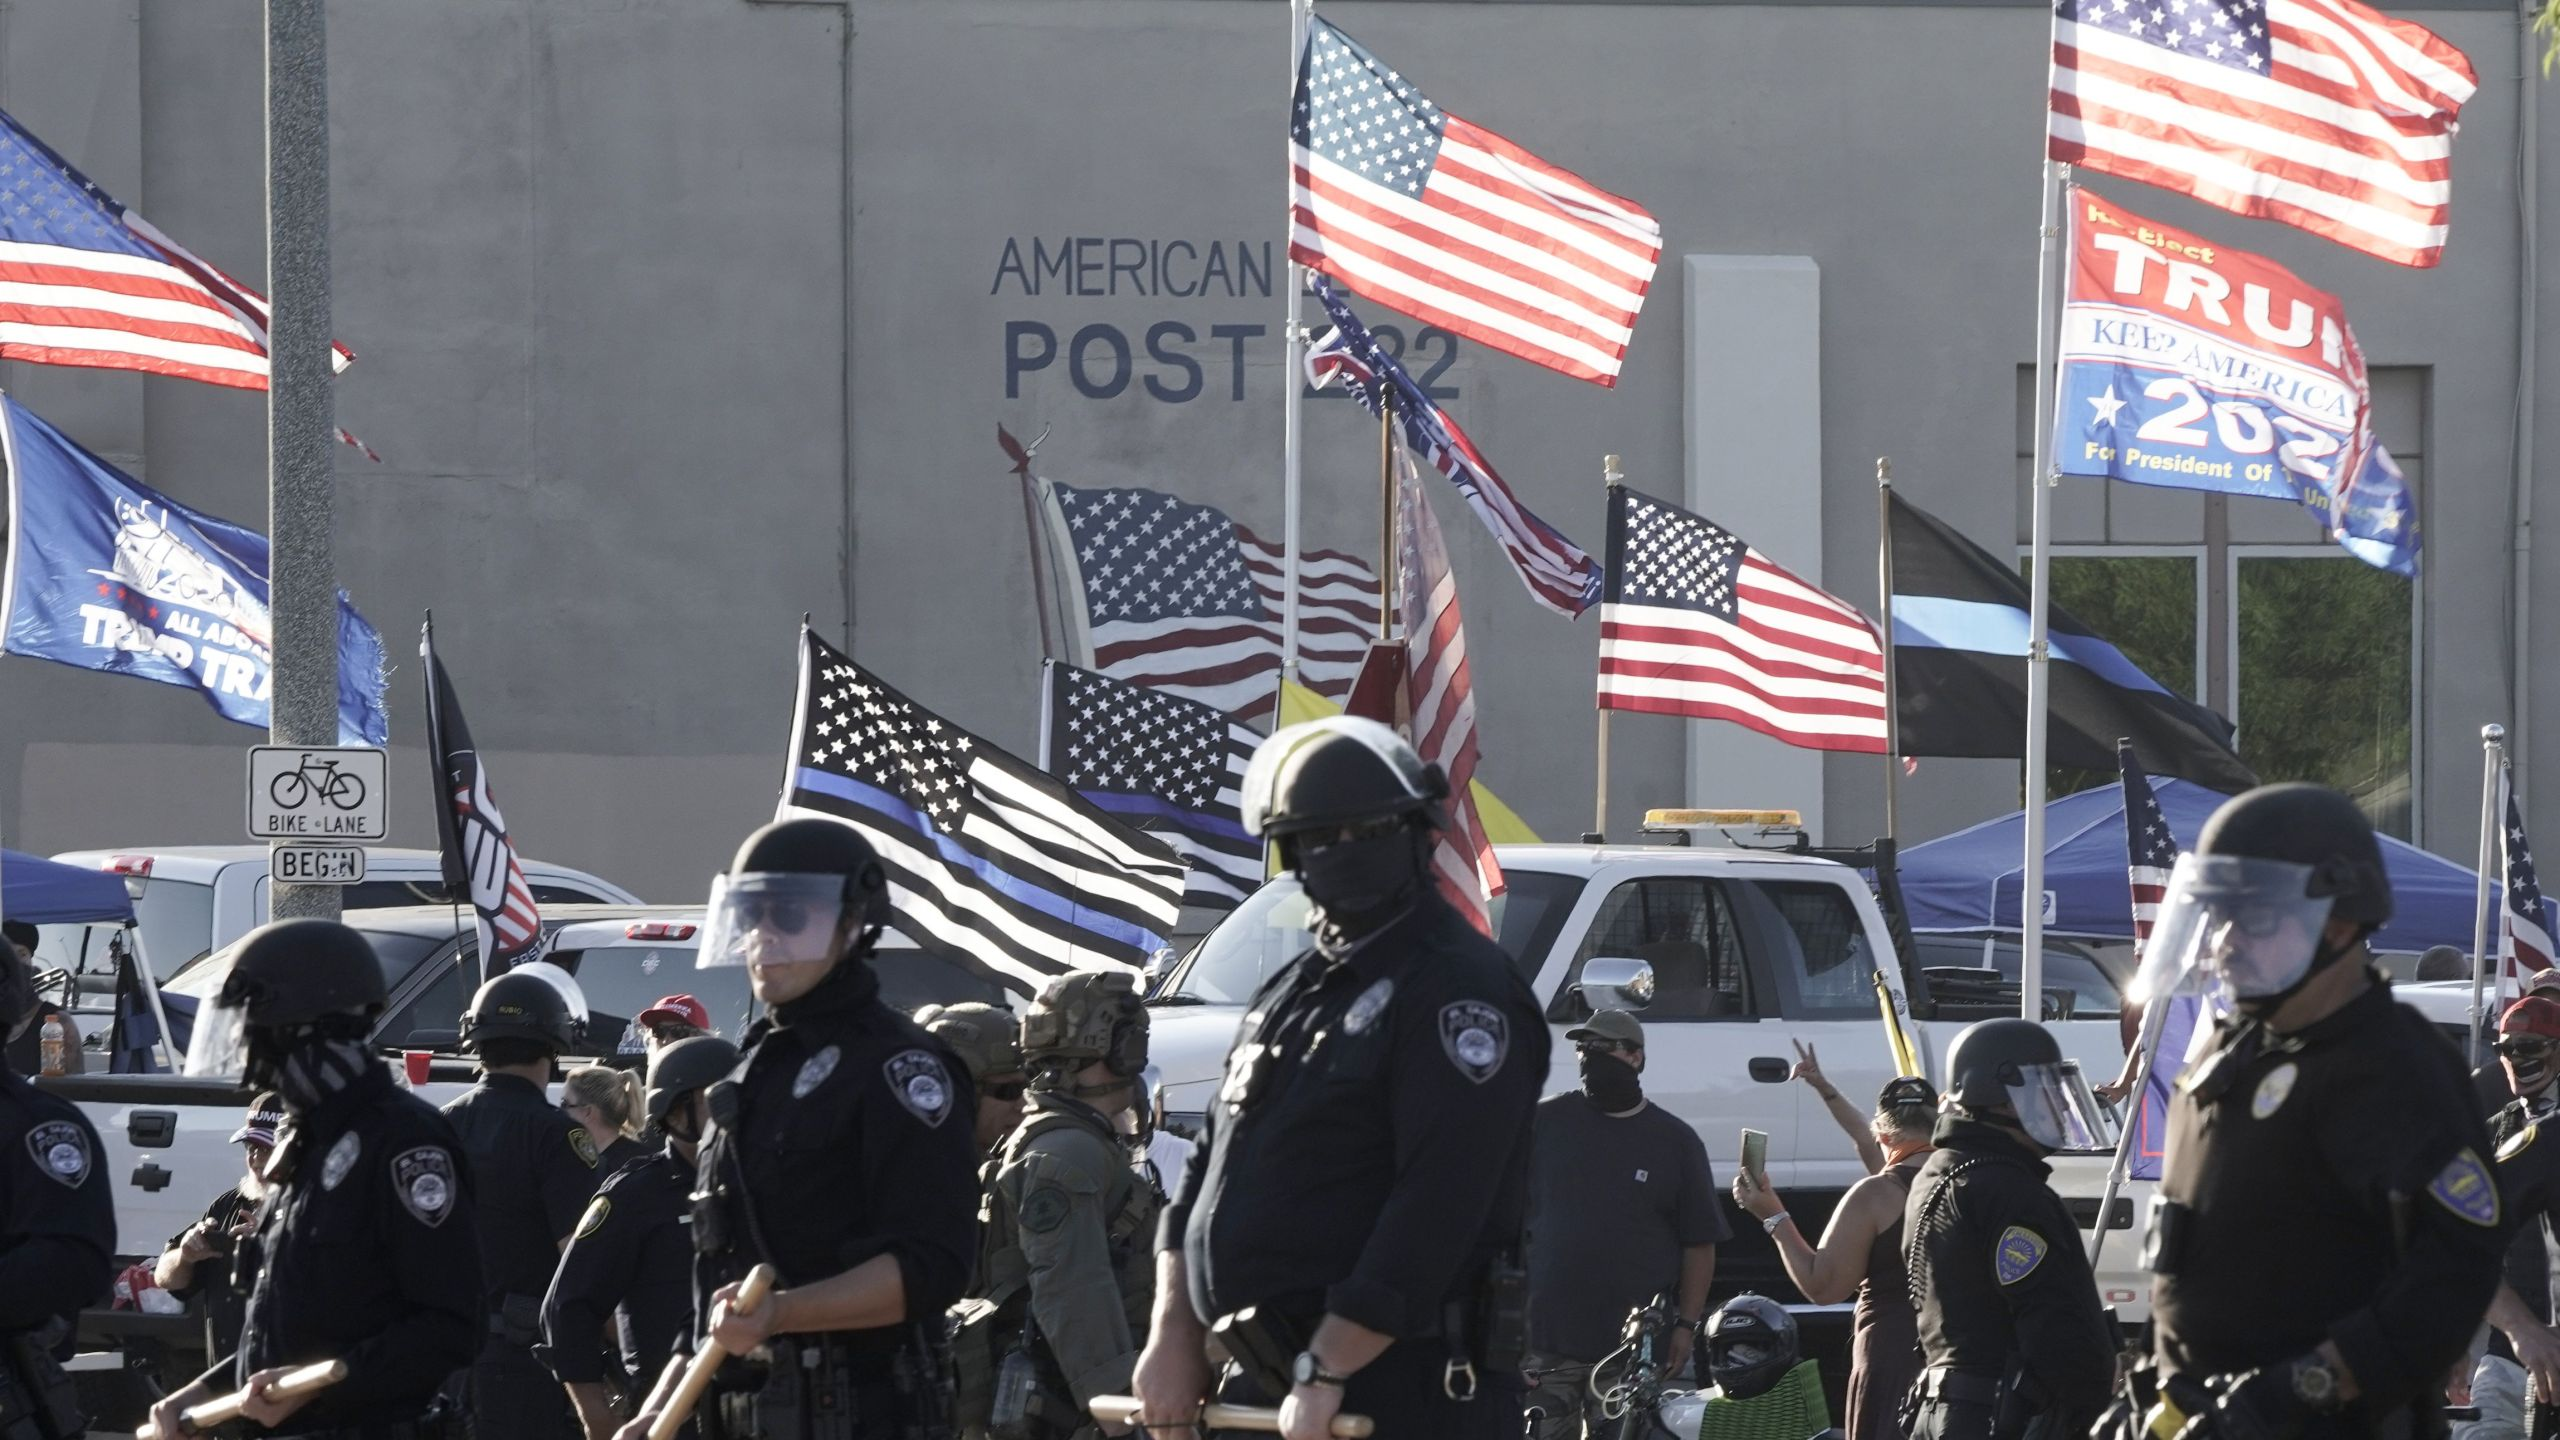 Officers of the El Cajon Police Department and San Diego Sheriff Department deputies separate right-wing counter-protestors at the American Legion Post 282 from Black Lives Matter demonstrators against racial injustice and police brutality in La Mesa, Calif. on Aug. 1, 2020. (Bing GUAN / AFP via Getty Images)